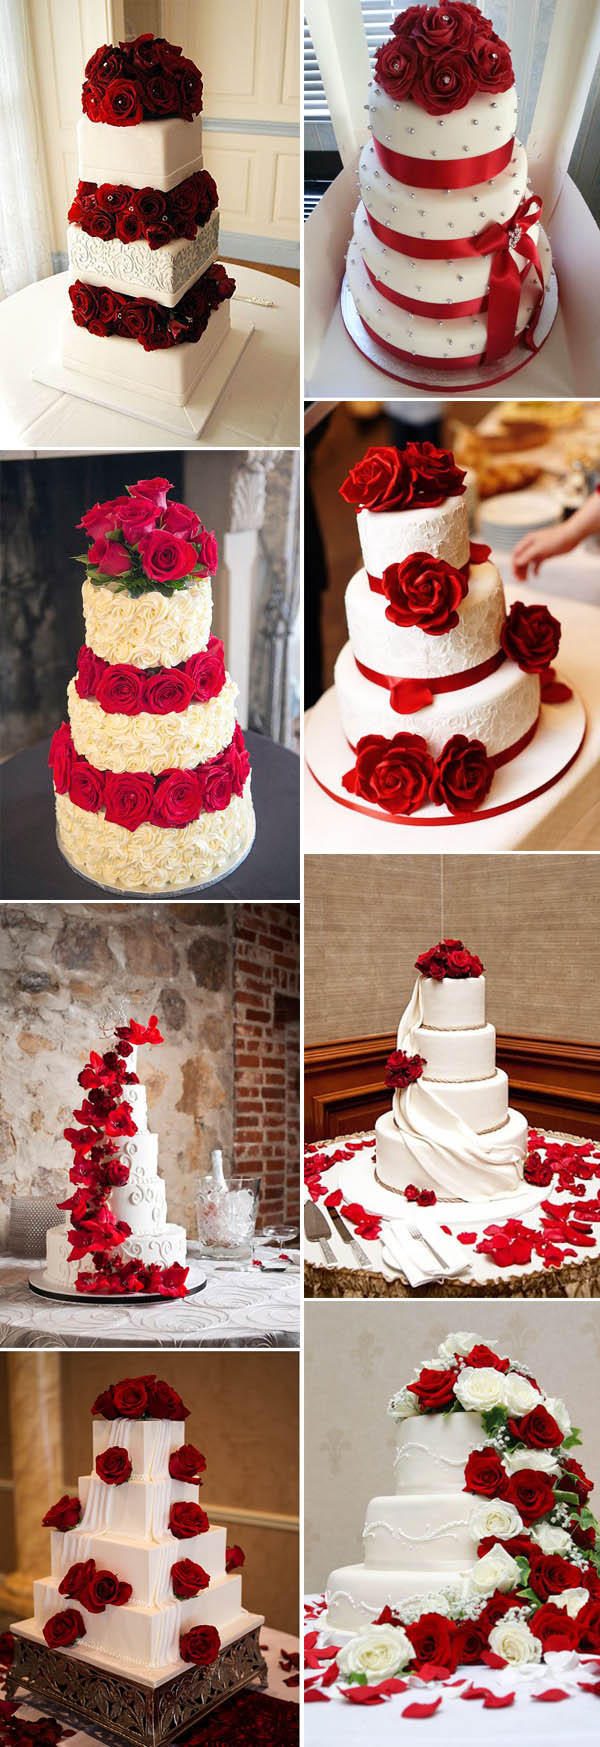 Red White Wedding Cakes  40 Inspirational Classic Red and White Wedding Ideas